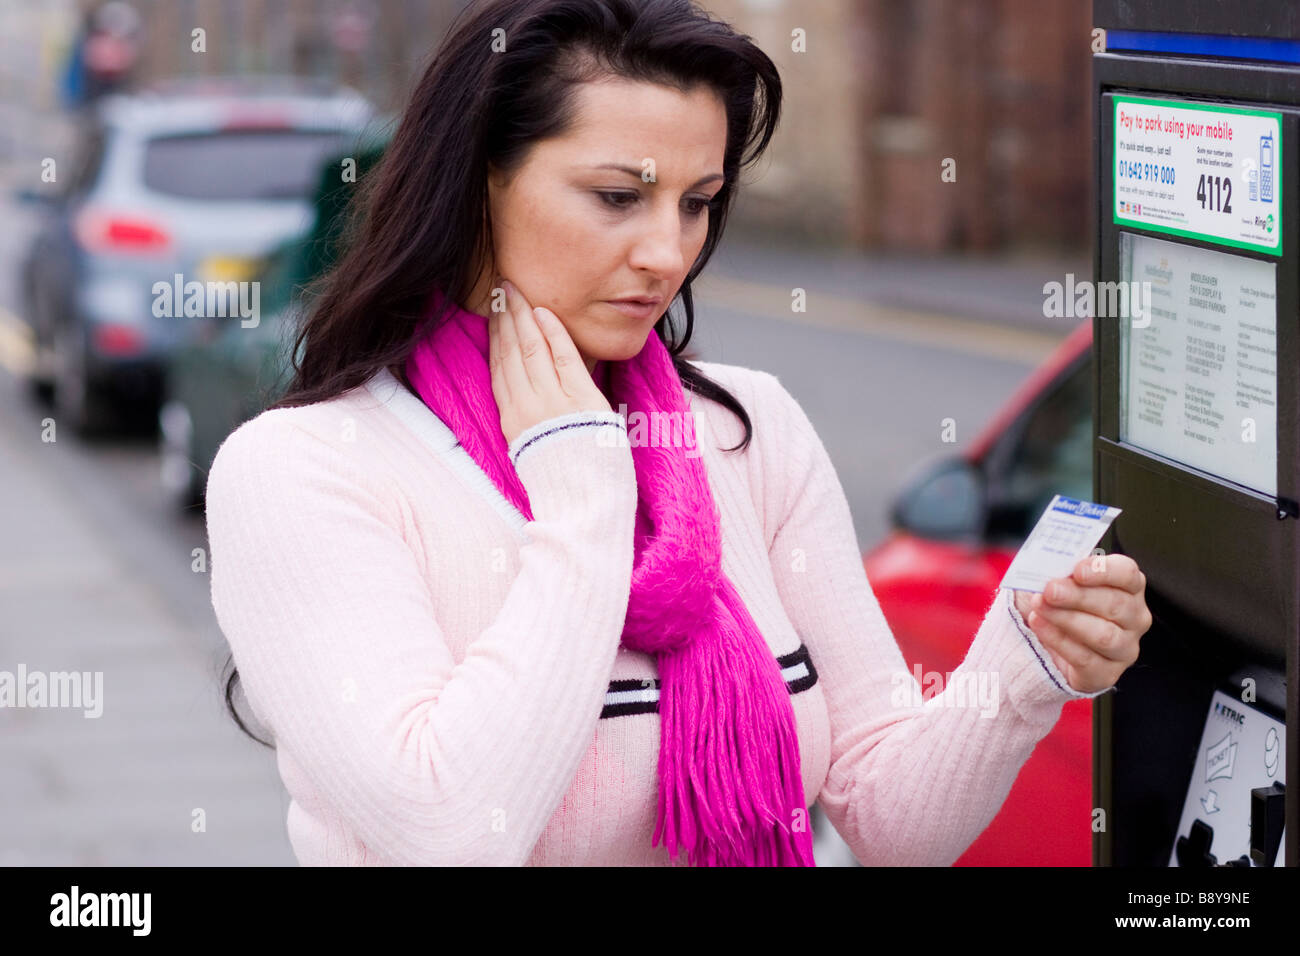 Woman with parking ticket - Stock Image